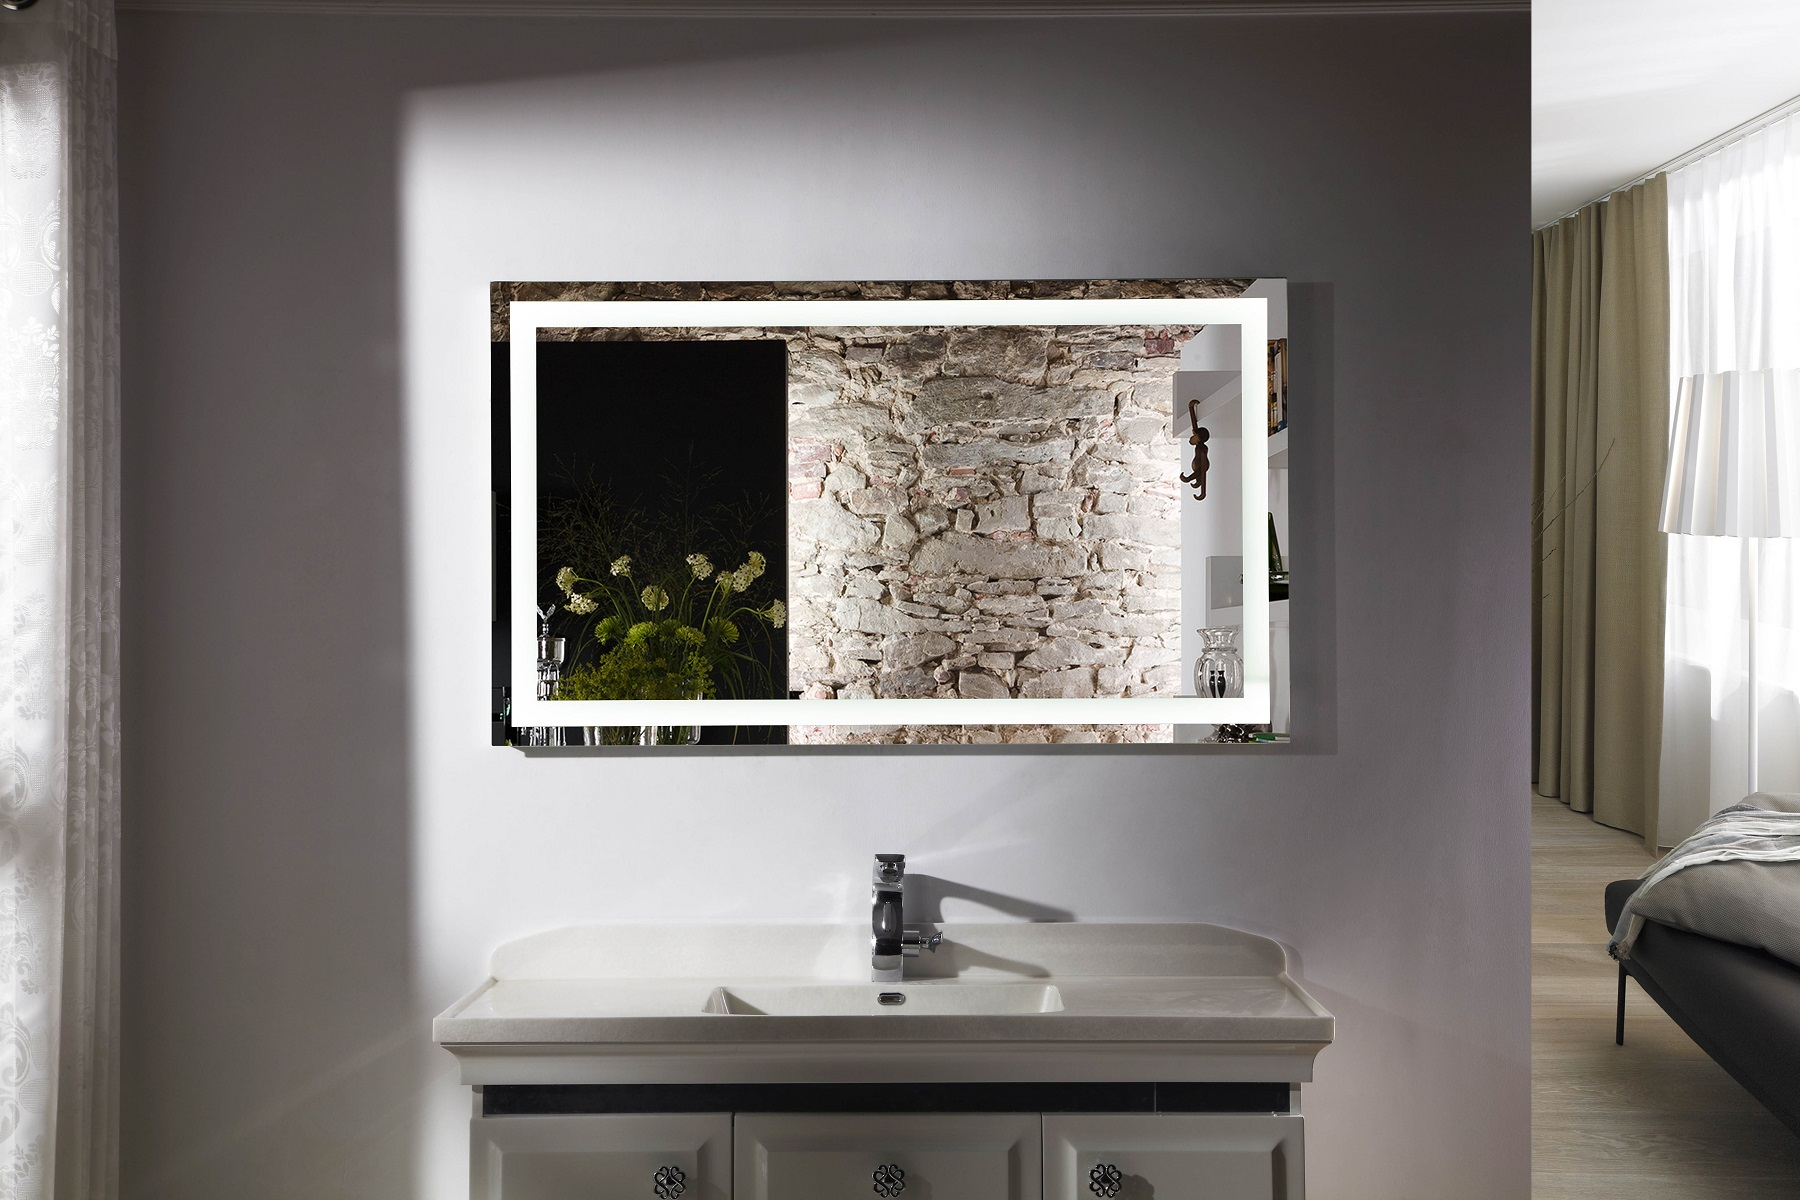 Budapest iv lighted vanity mirror led bathroom mirror horizontal Bathroom lighted vanity mirrors